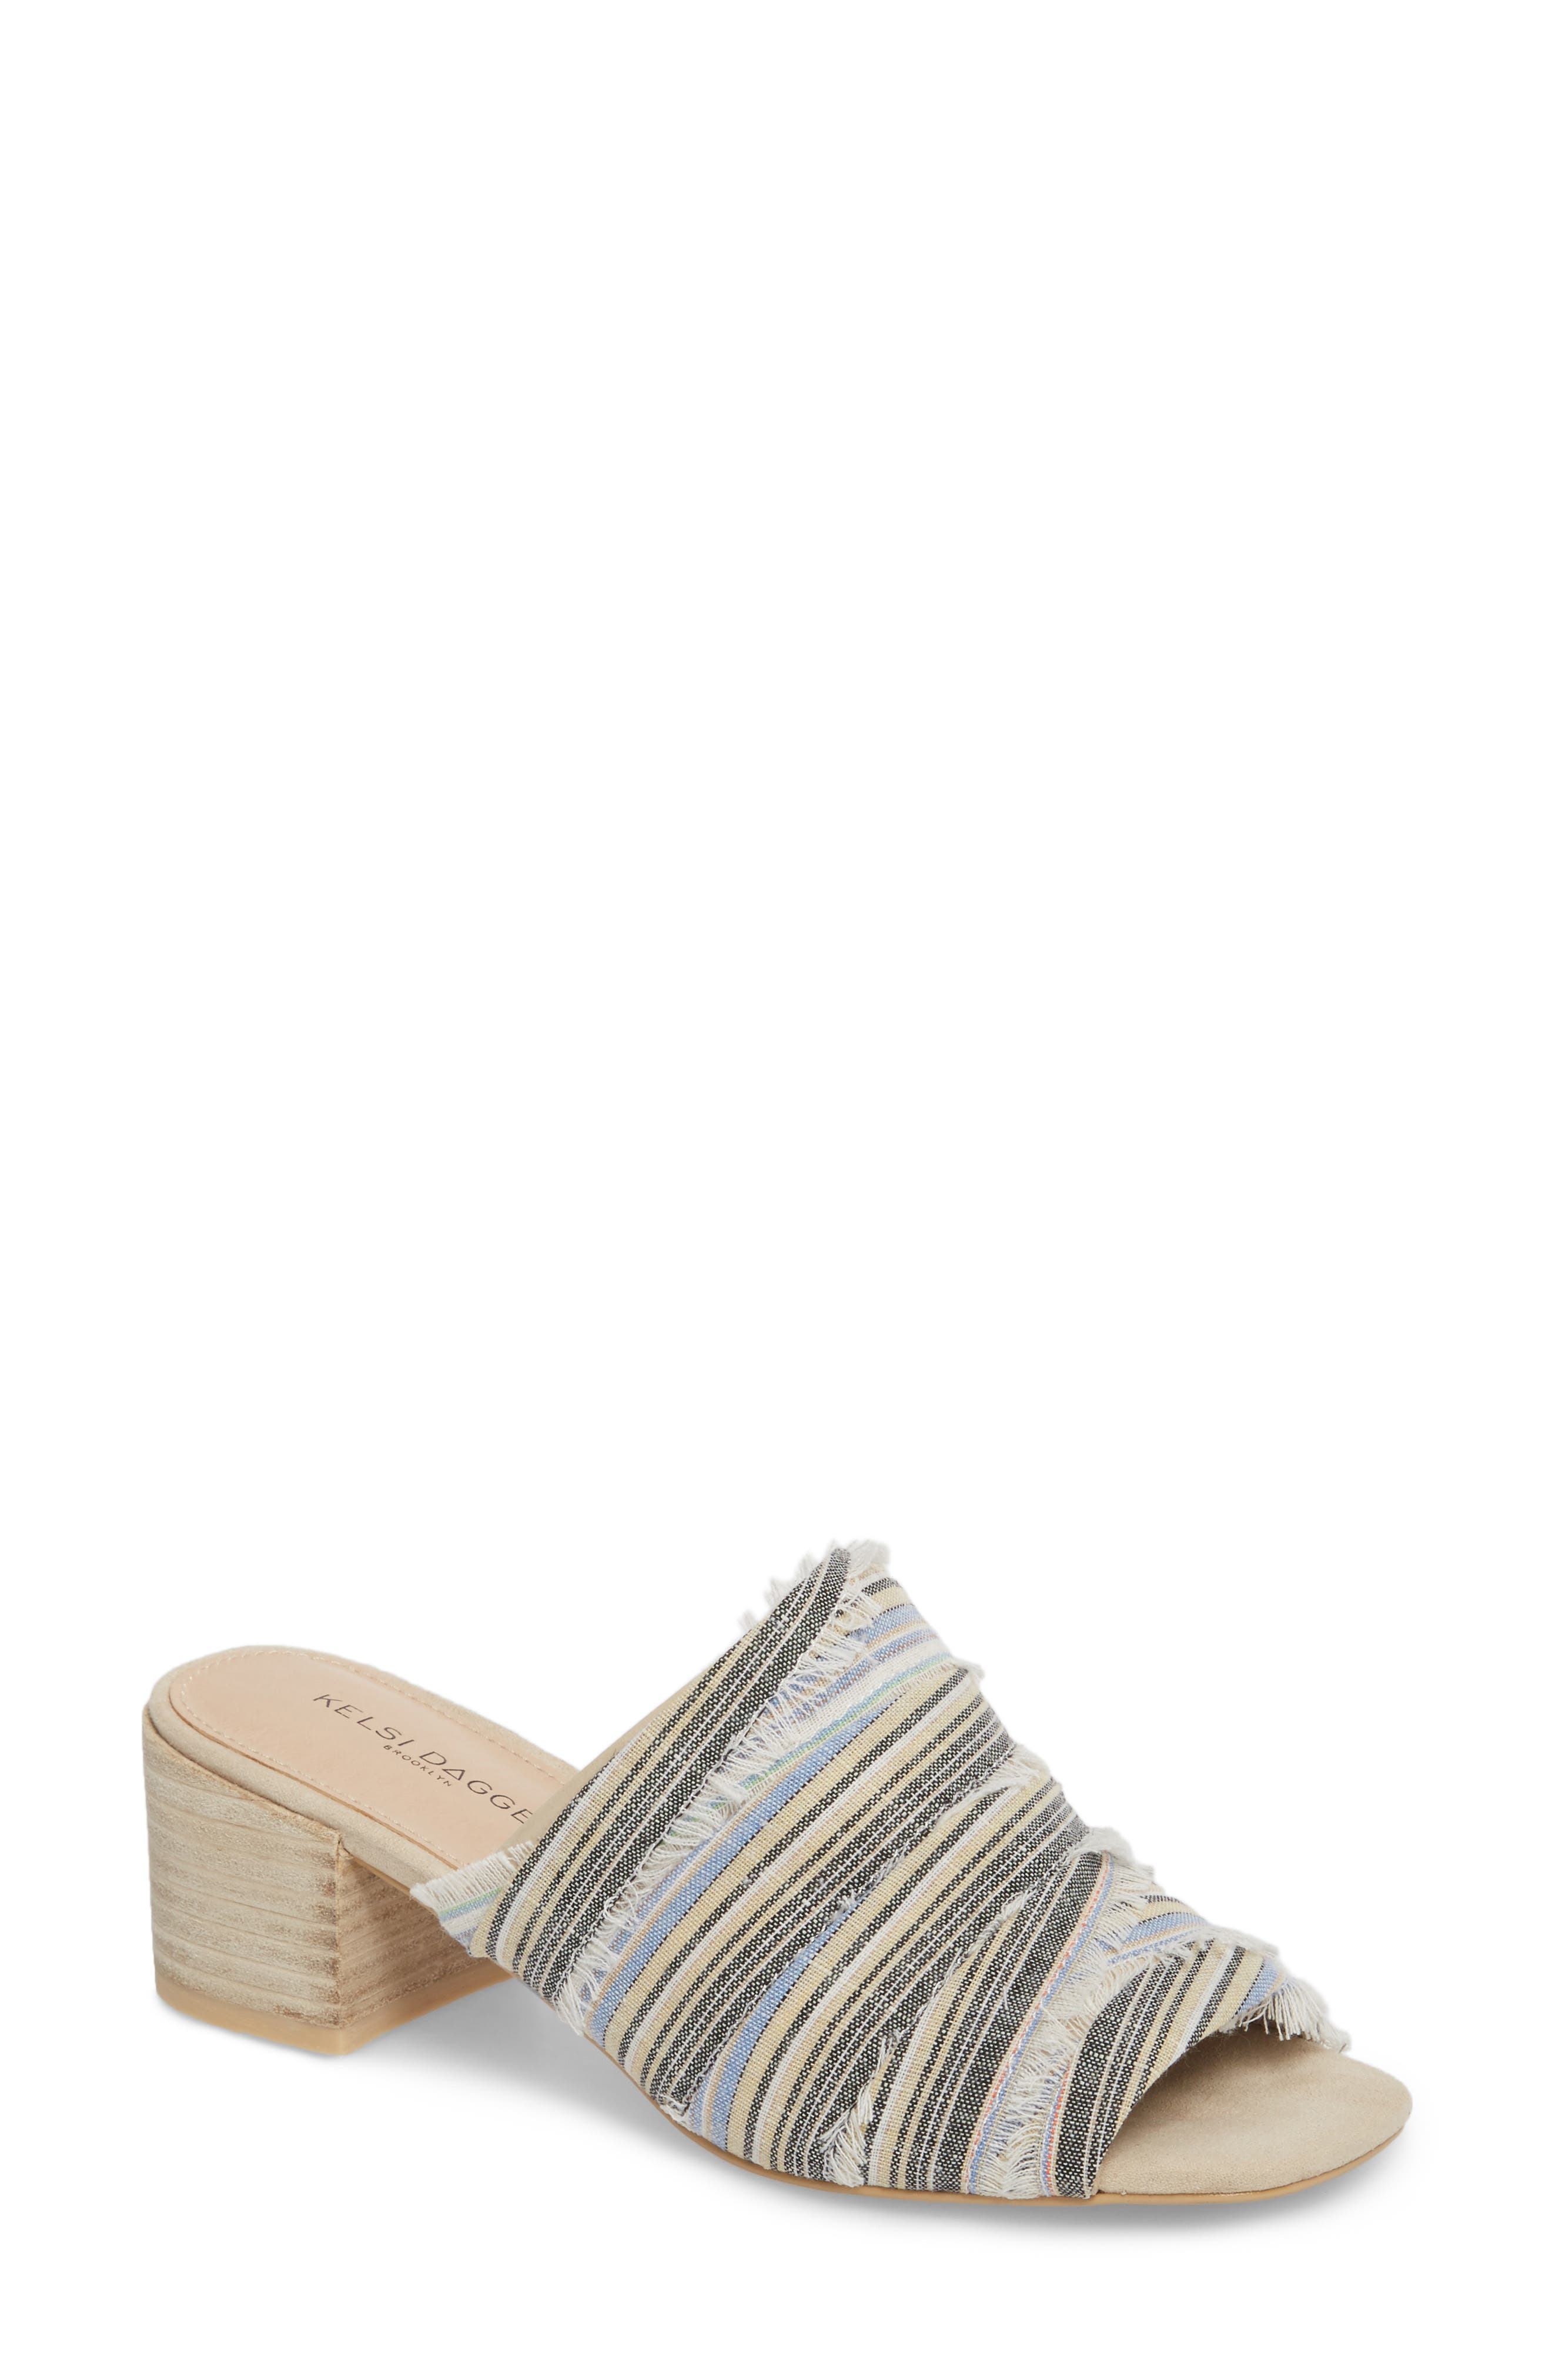 Image of Kelsi Dagger Brooklyn Seigel Slide Sandal